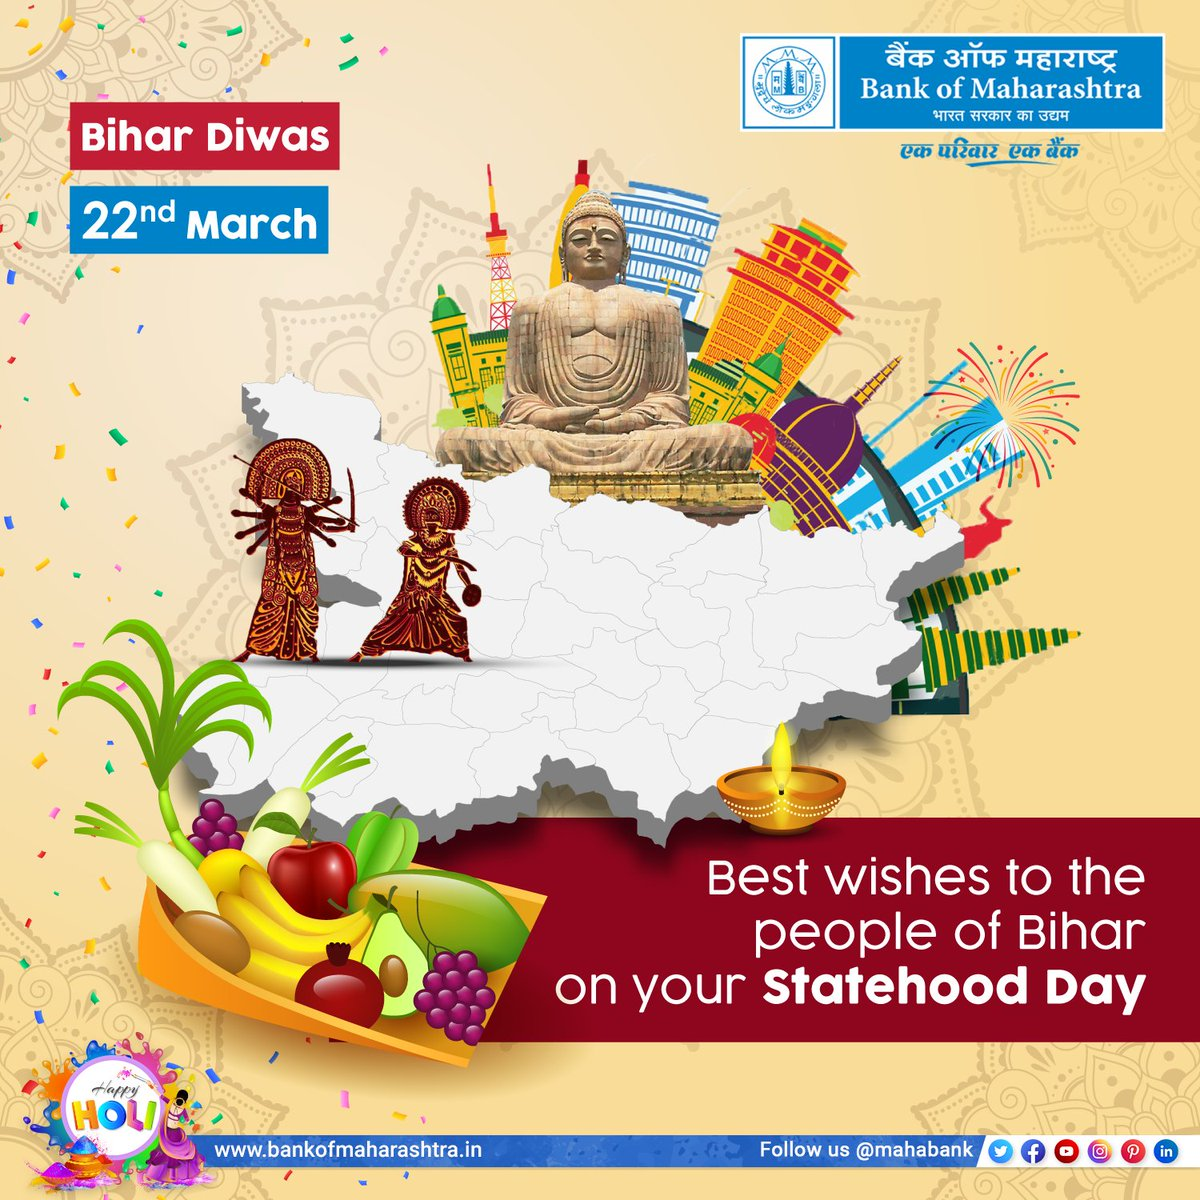 Best wishes to all the people of Bihar on your Statehood Day. Happy Bihardiwas BankofMaharashtra mahabank https t